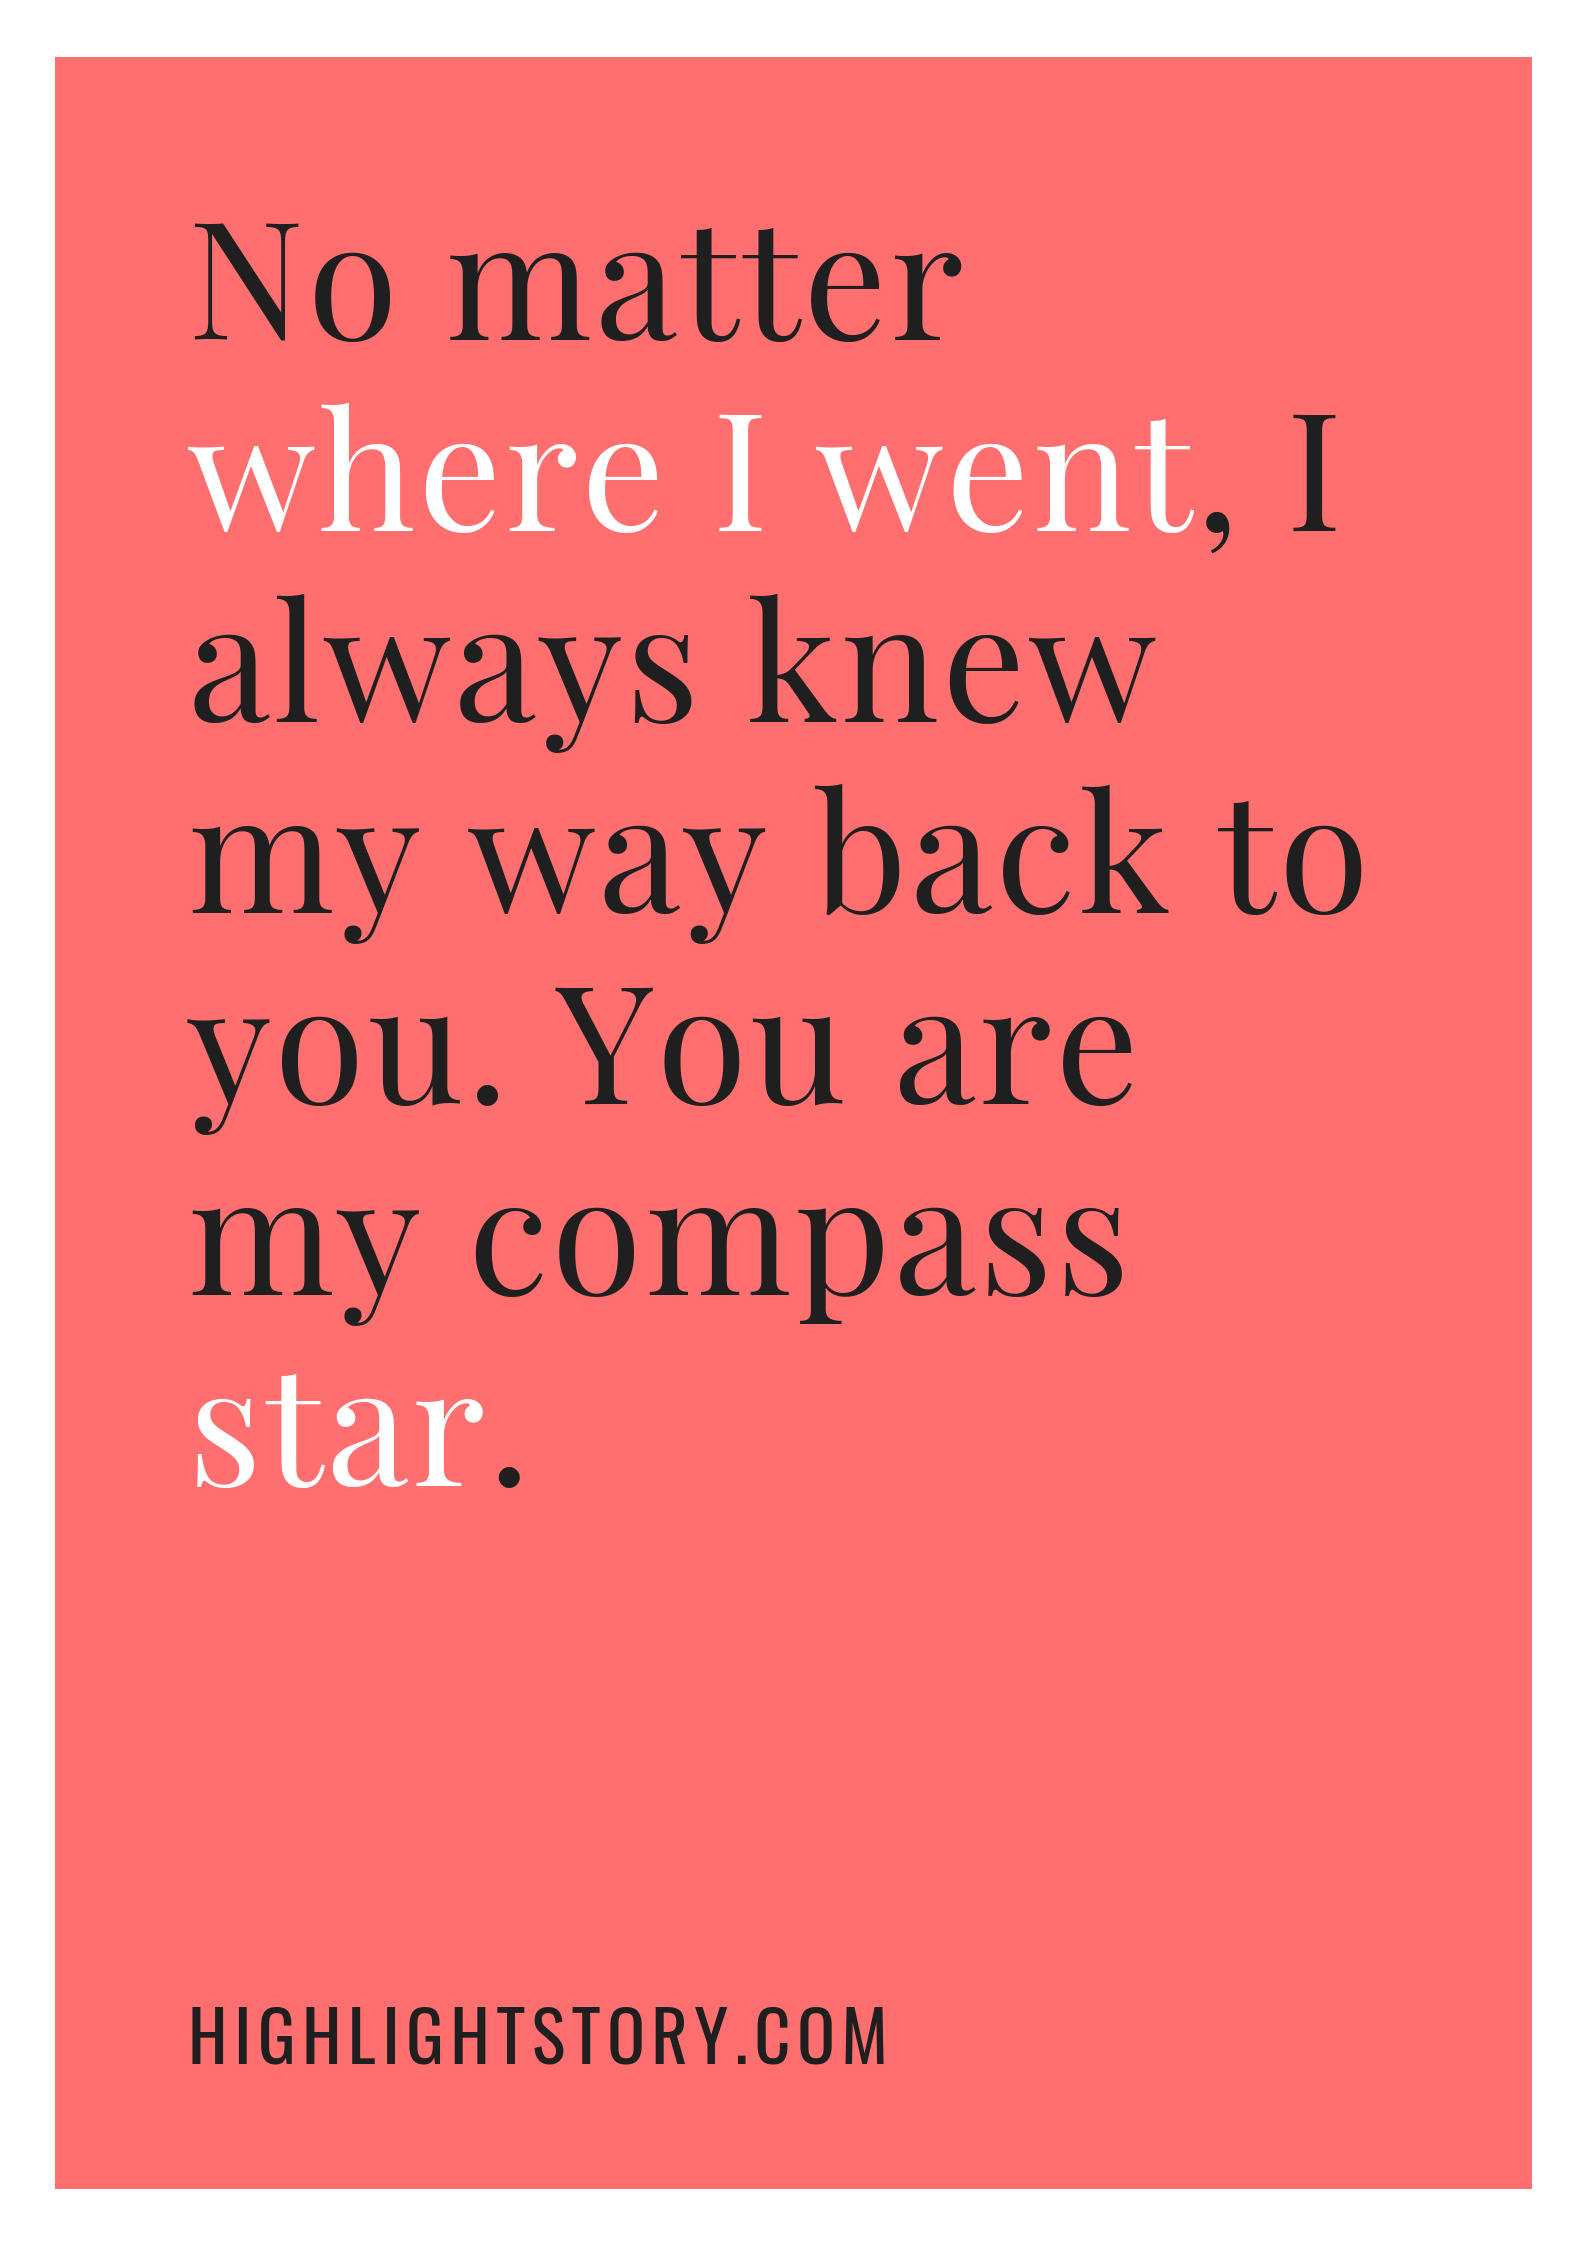 No matter where I went, I always knew my way back to you. You are my compass star.